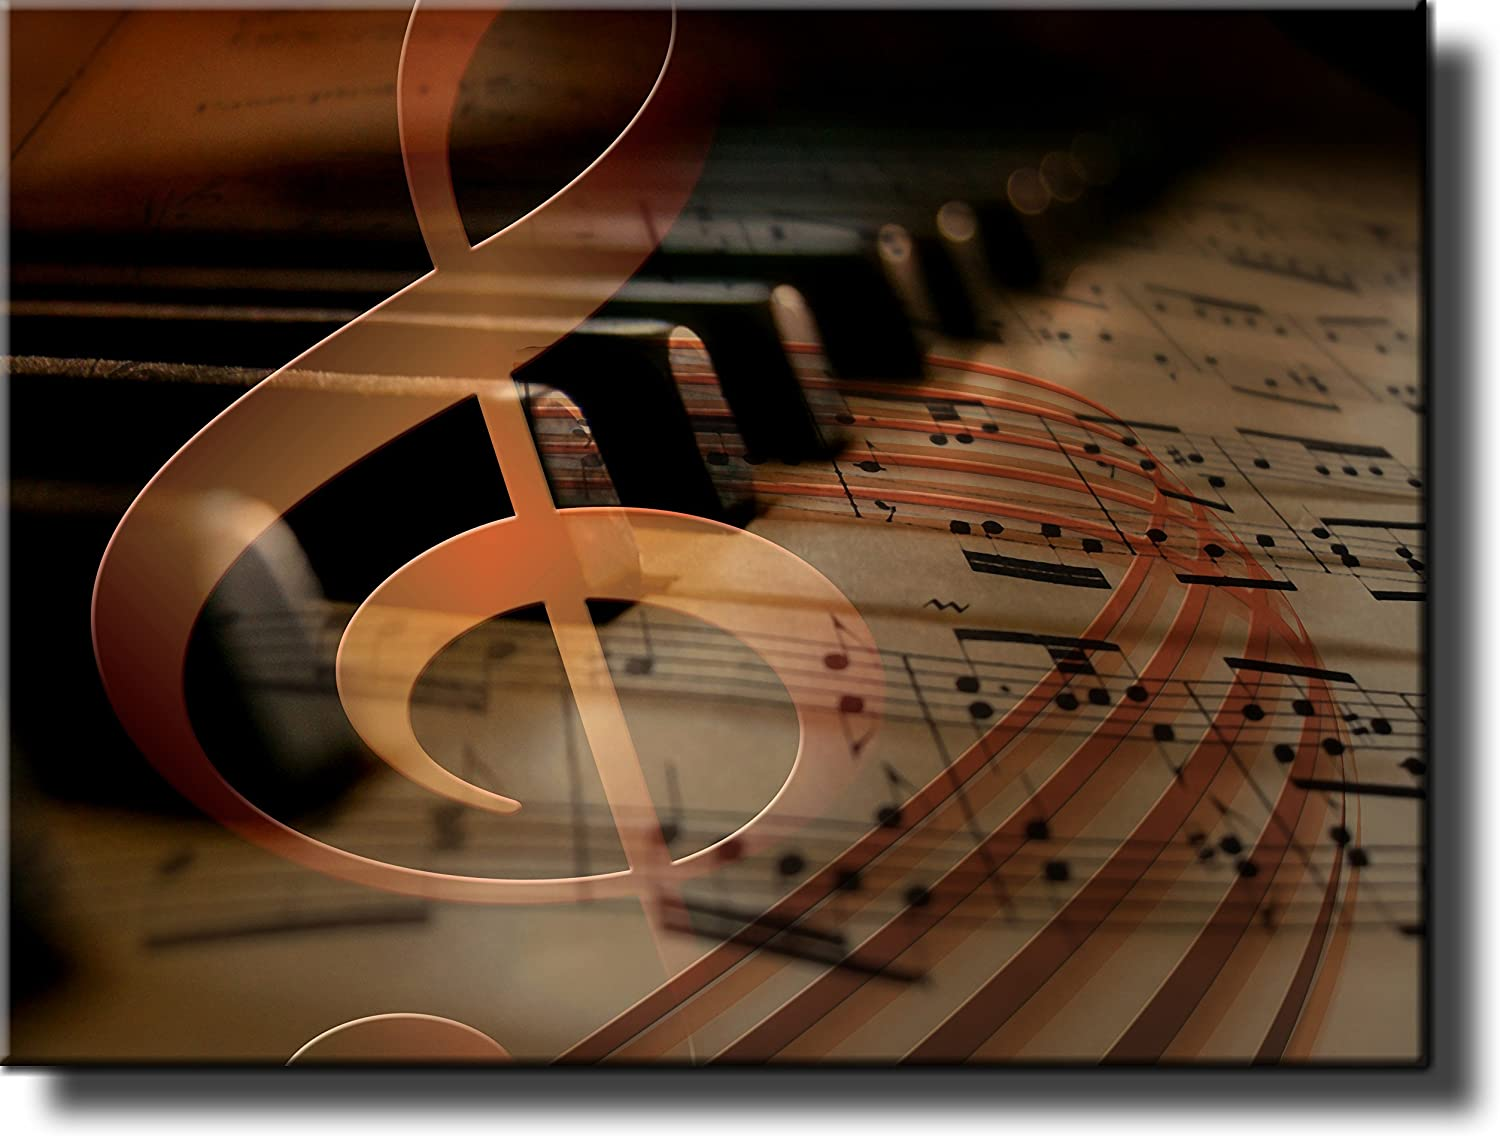 Music Notes Piano Picture Made on Stretched Canvas, Wall Art Decor Ready to Hang!.